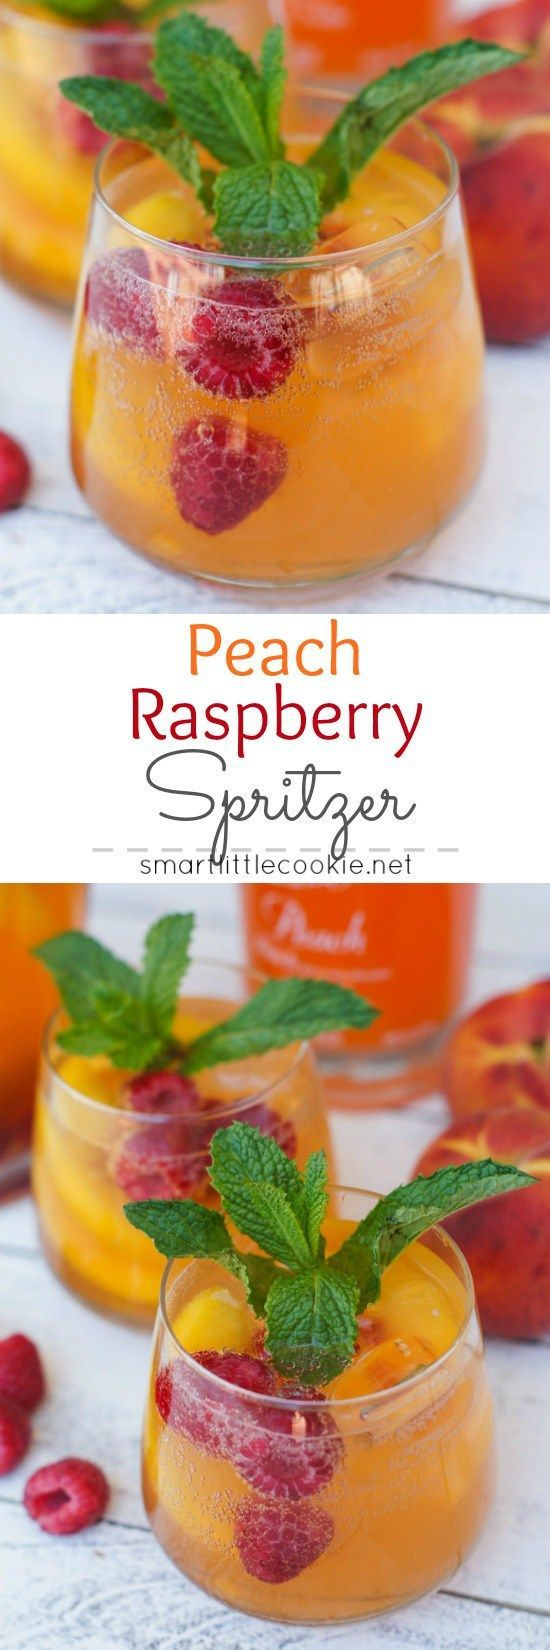 This Peach Raspberry Spritzer is the perfect summery drink for backyard gatherings, Sunday brunch or even friends' game night. The refreshing and delicious cocktail will be a hit among family and friends. #AlizeInColor #ad